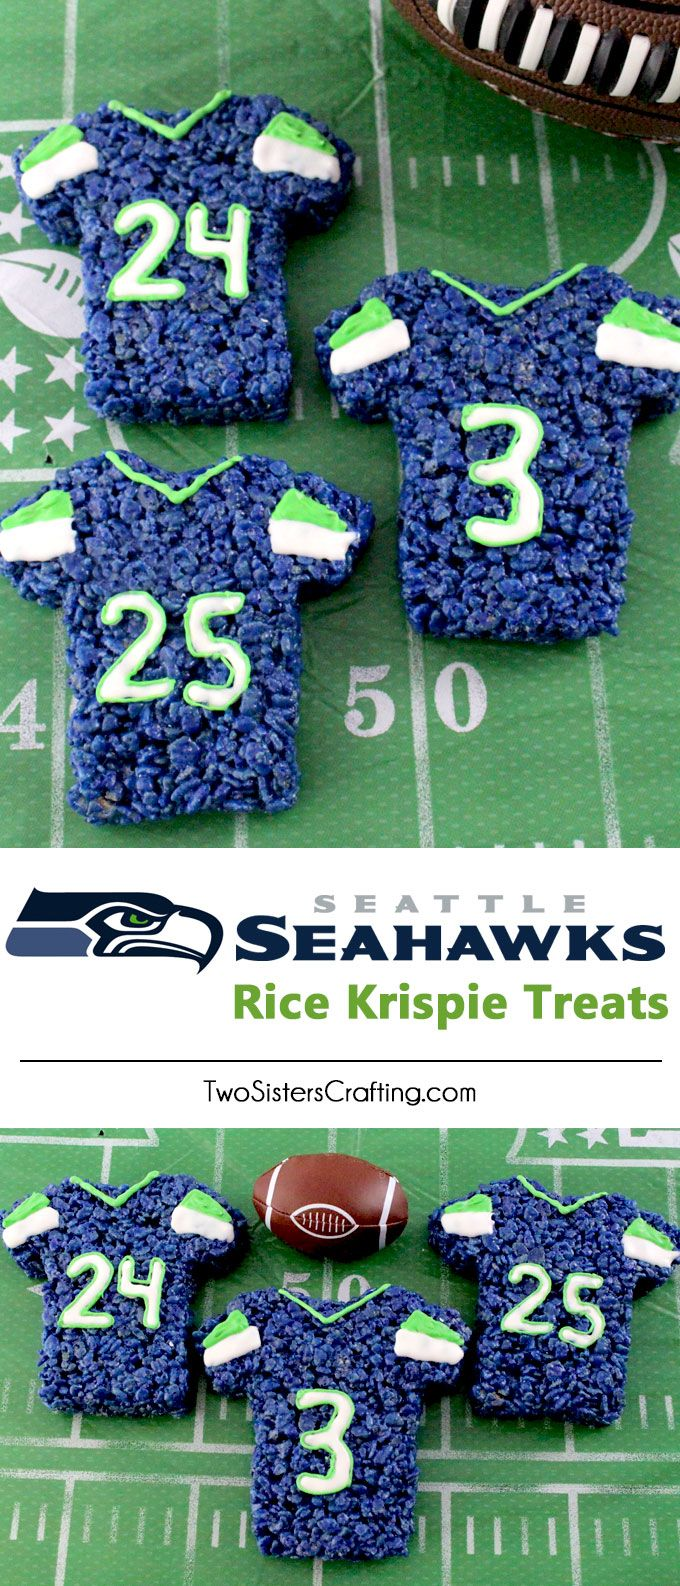 These Seattle Seahawks Rice Krispie Treats Team Jerseys are a fun football dessert for a game day football party, an NFL playoff party, a Super Bowl party or as a special snack for the Seattle Seahawks fans in your life. Go Seahawks! And follow us for more fun Super Bowl Food Ideas.